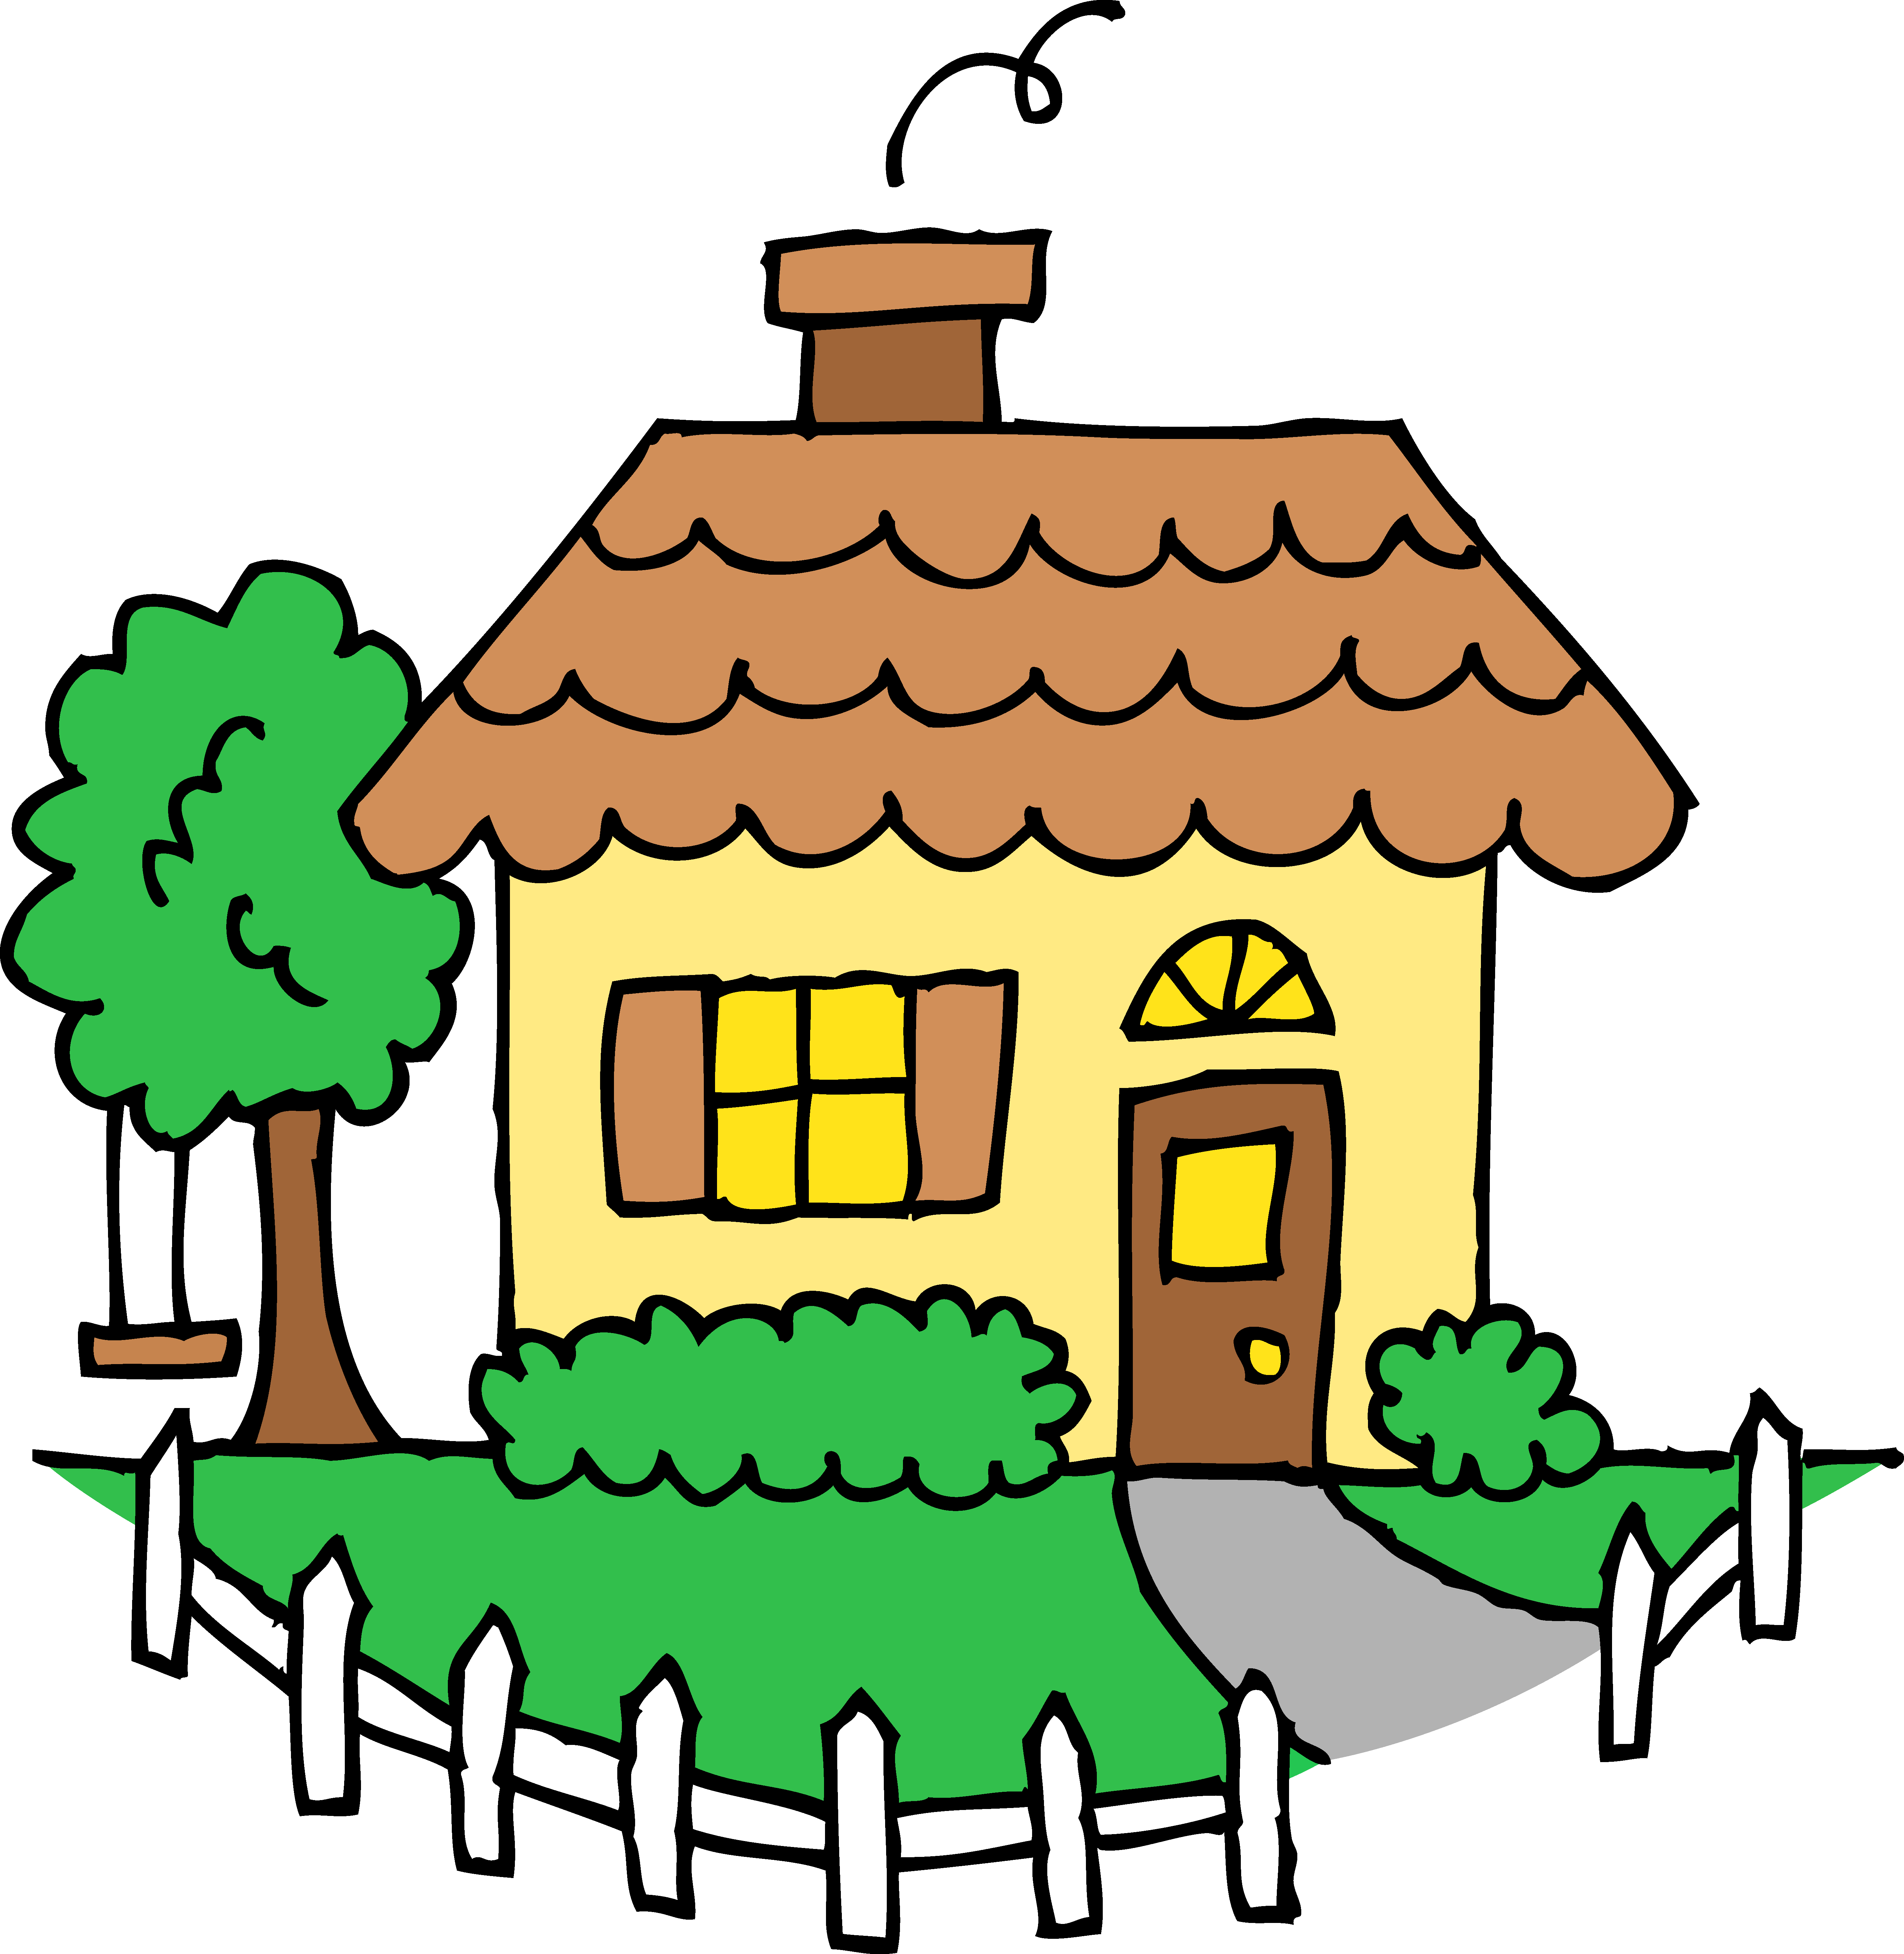 Free Images Of Houses - Clipart Library.-Free Images Of Houses - Clipart library. Houses Archives - Coloring Point - Coloring Point-9